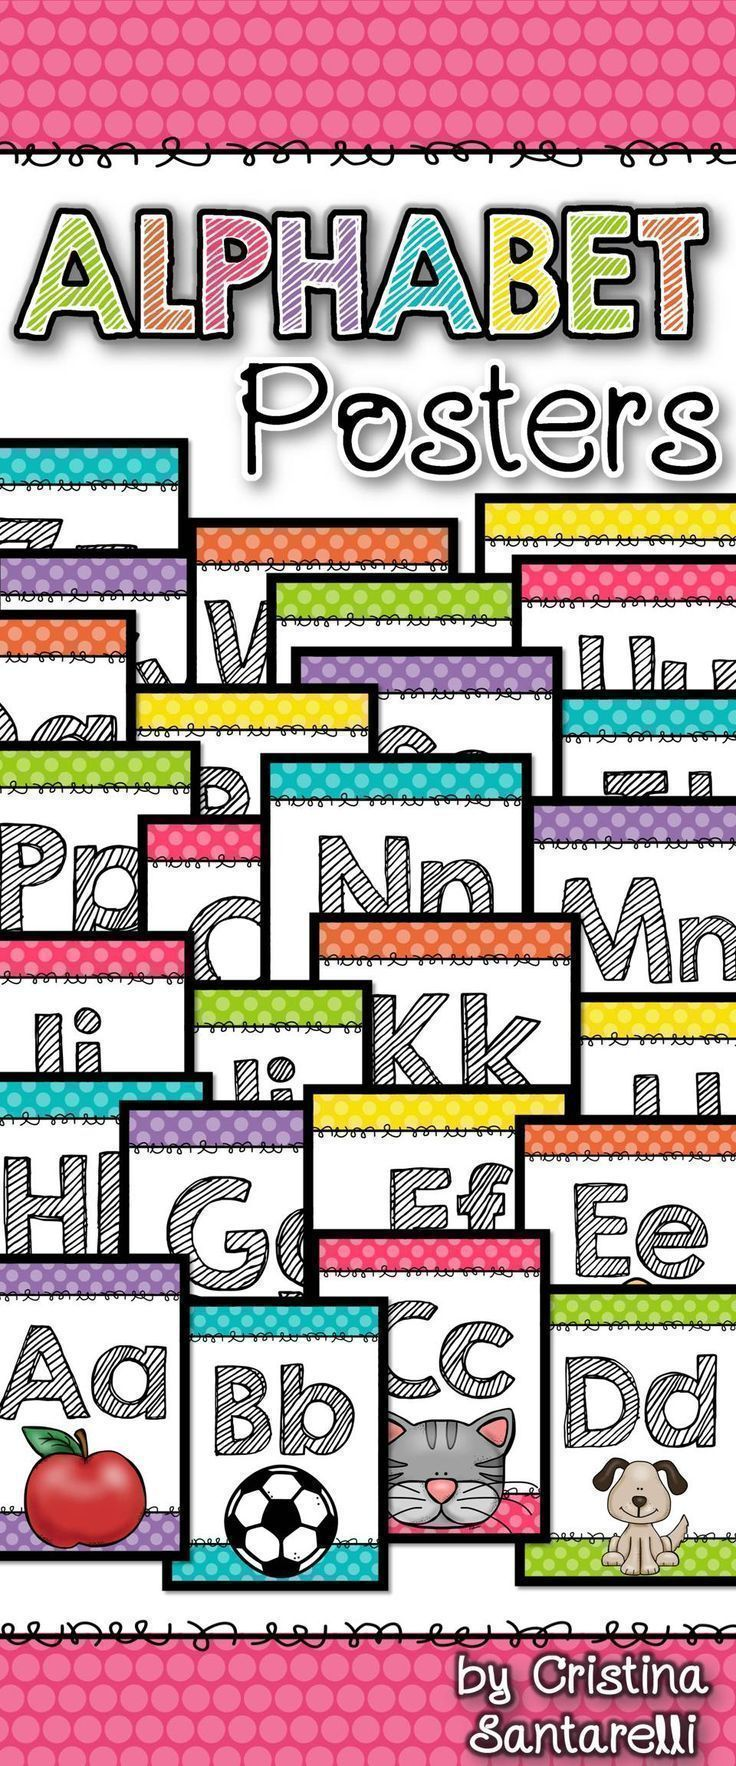 FREEBIE!!  Alphabet Posters includes 33 alphabet posters to display in your classroom!